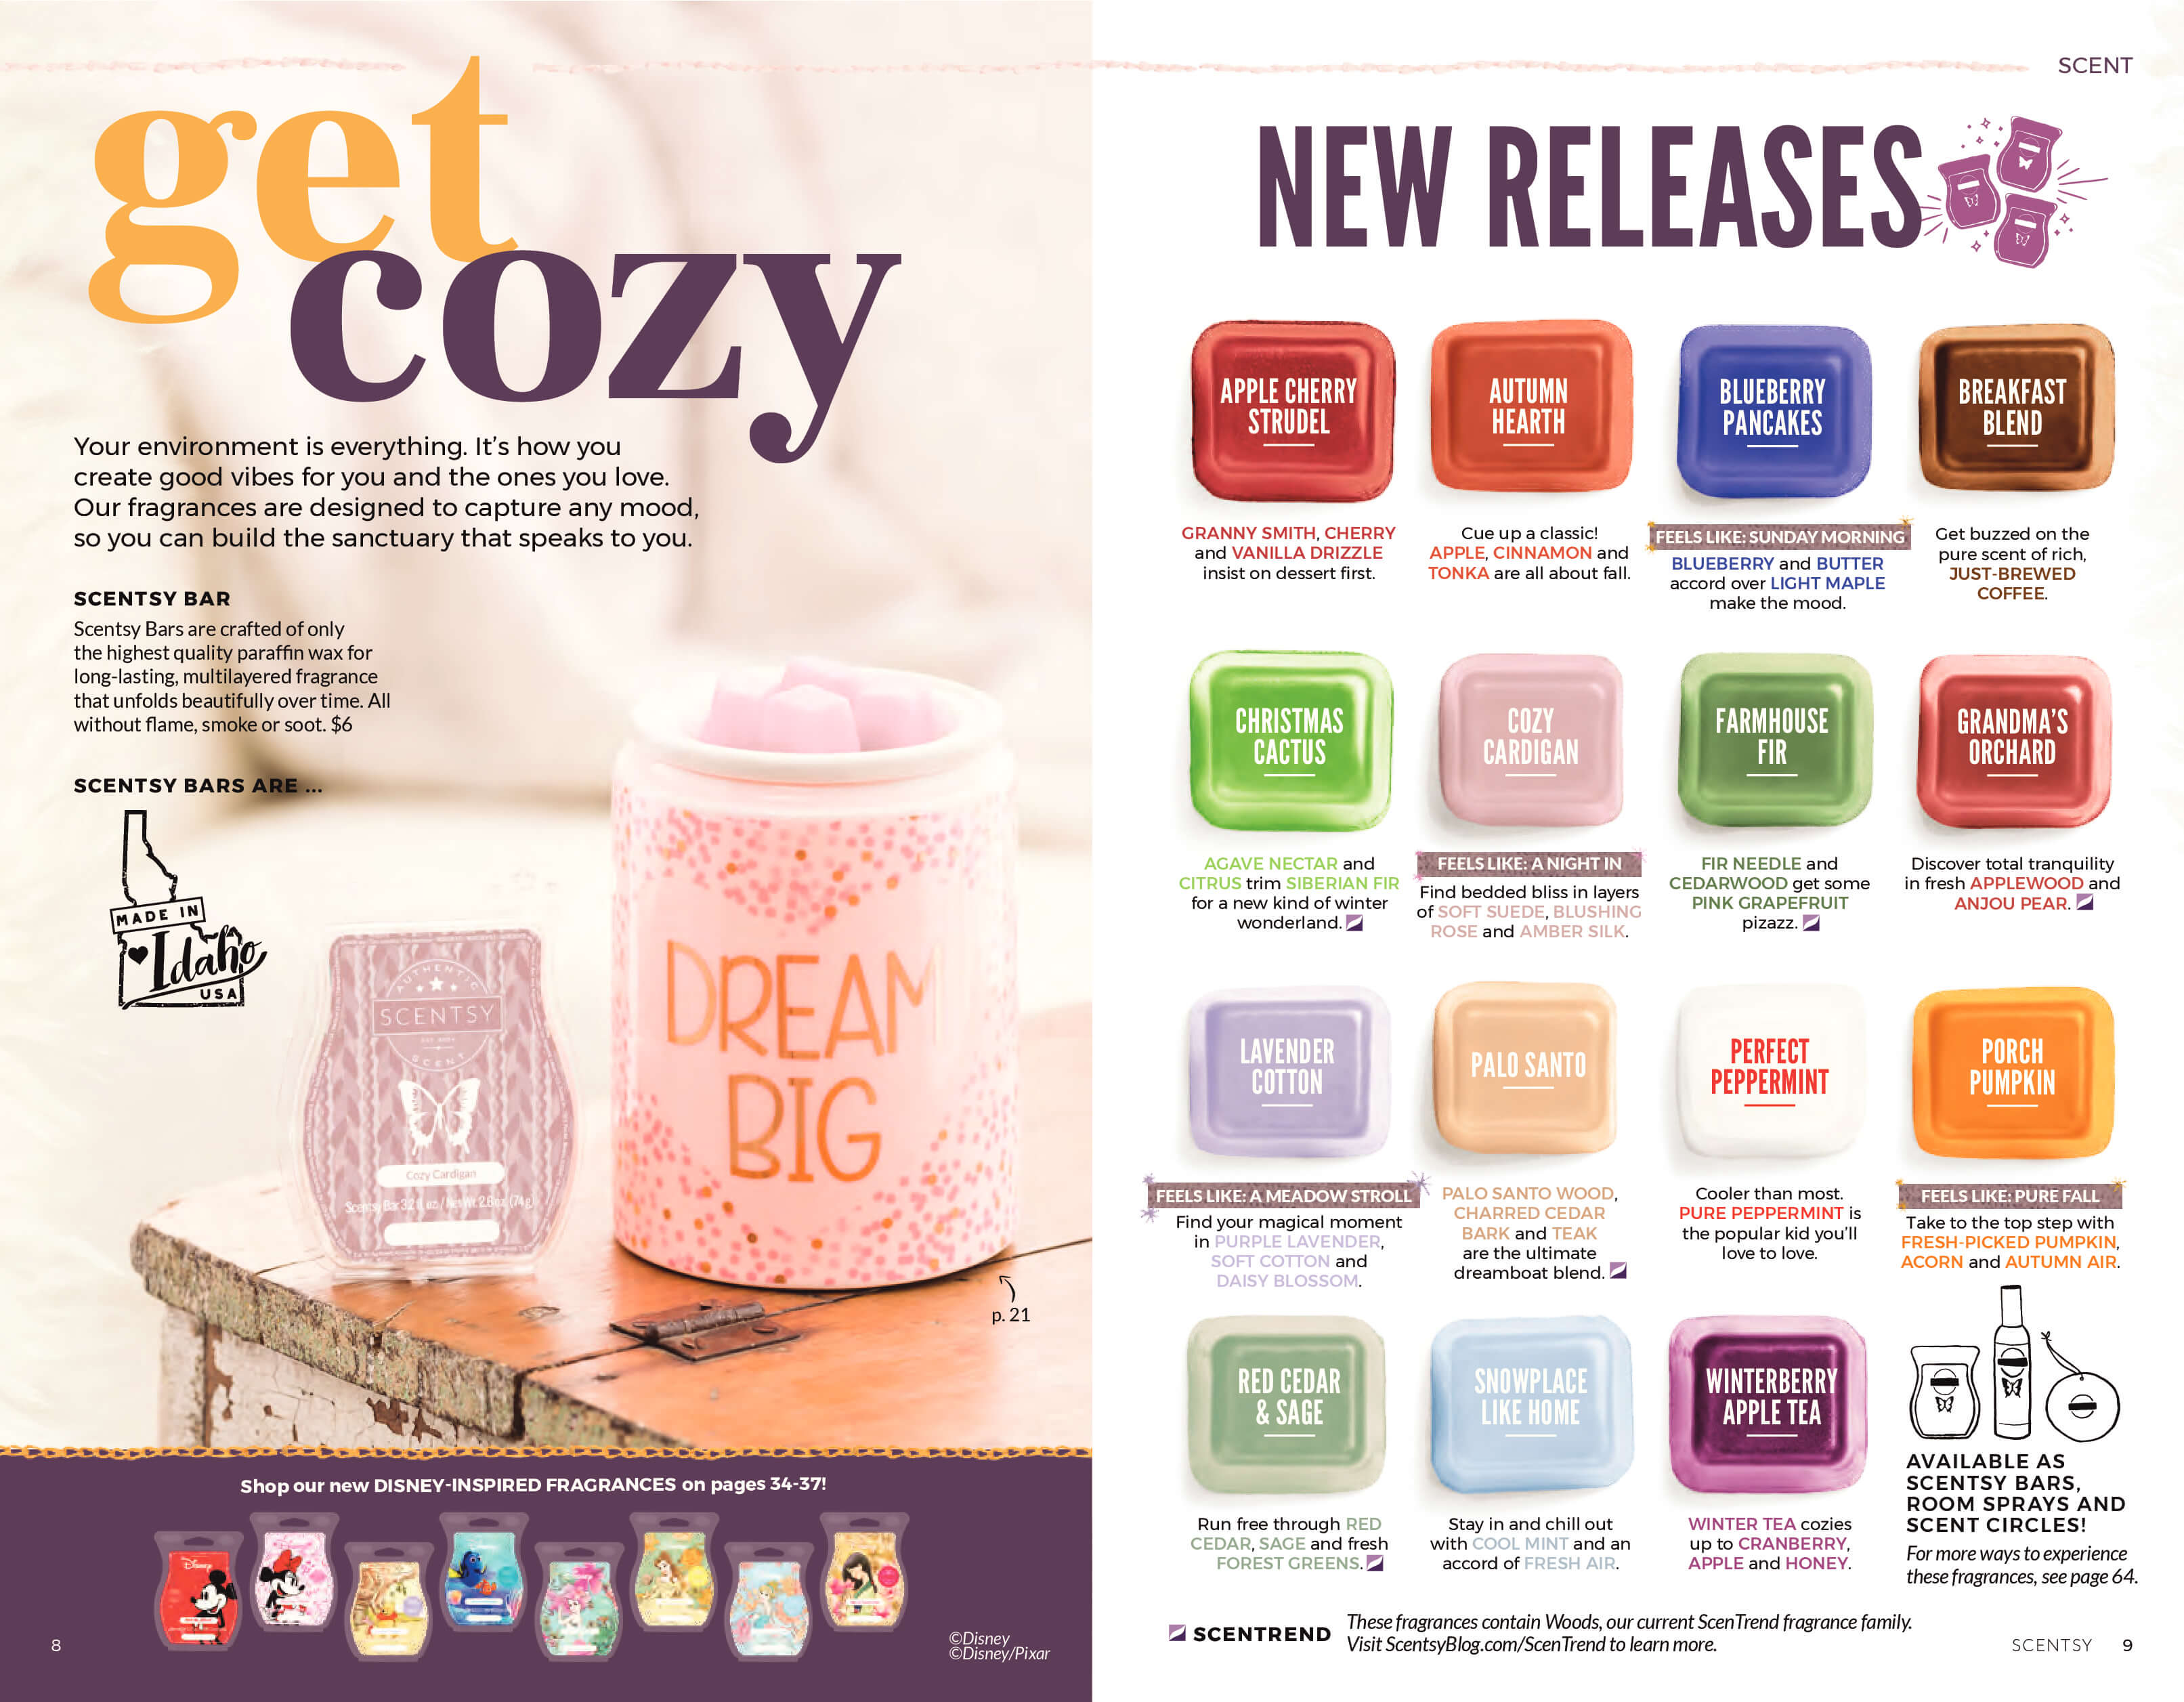 b74cb6cb936 SCENTSY FALL WINTER 2018 PRODUCTSSCENTSY FALL WINTER 2018 2019 CATALOGSCENTSY  FALL WINTER 2018 SCENT LISTCATALOG REQUESTDISCONTINUED FALL 2018DOWNLOAD ...